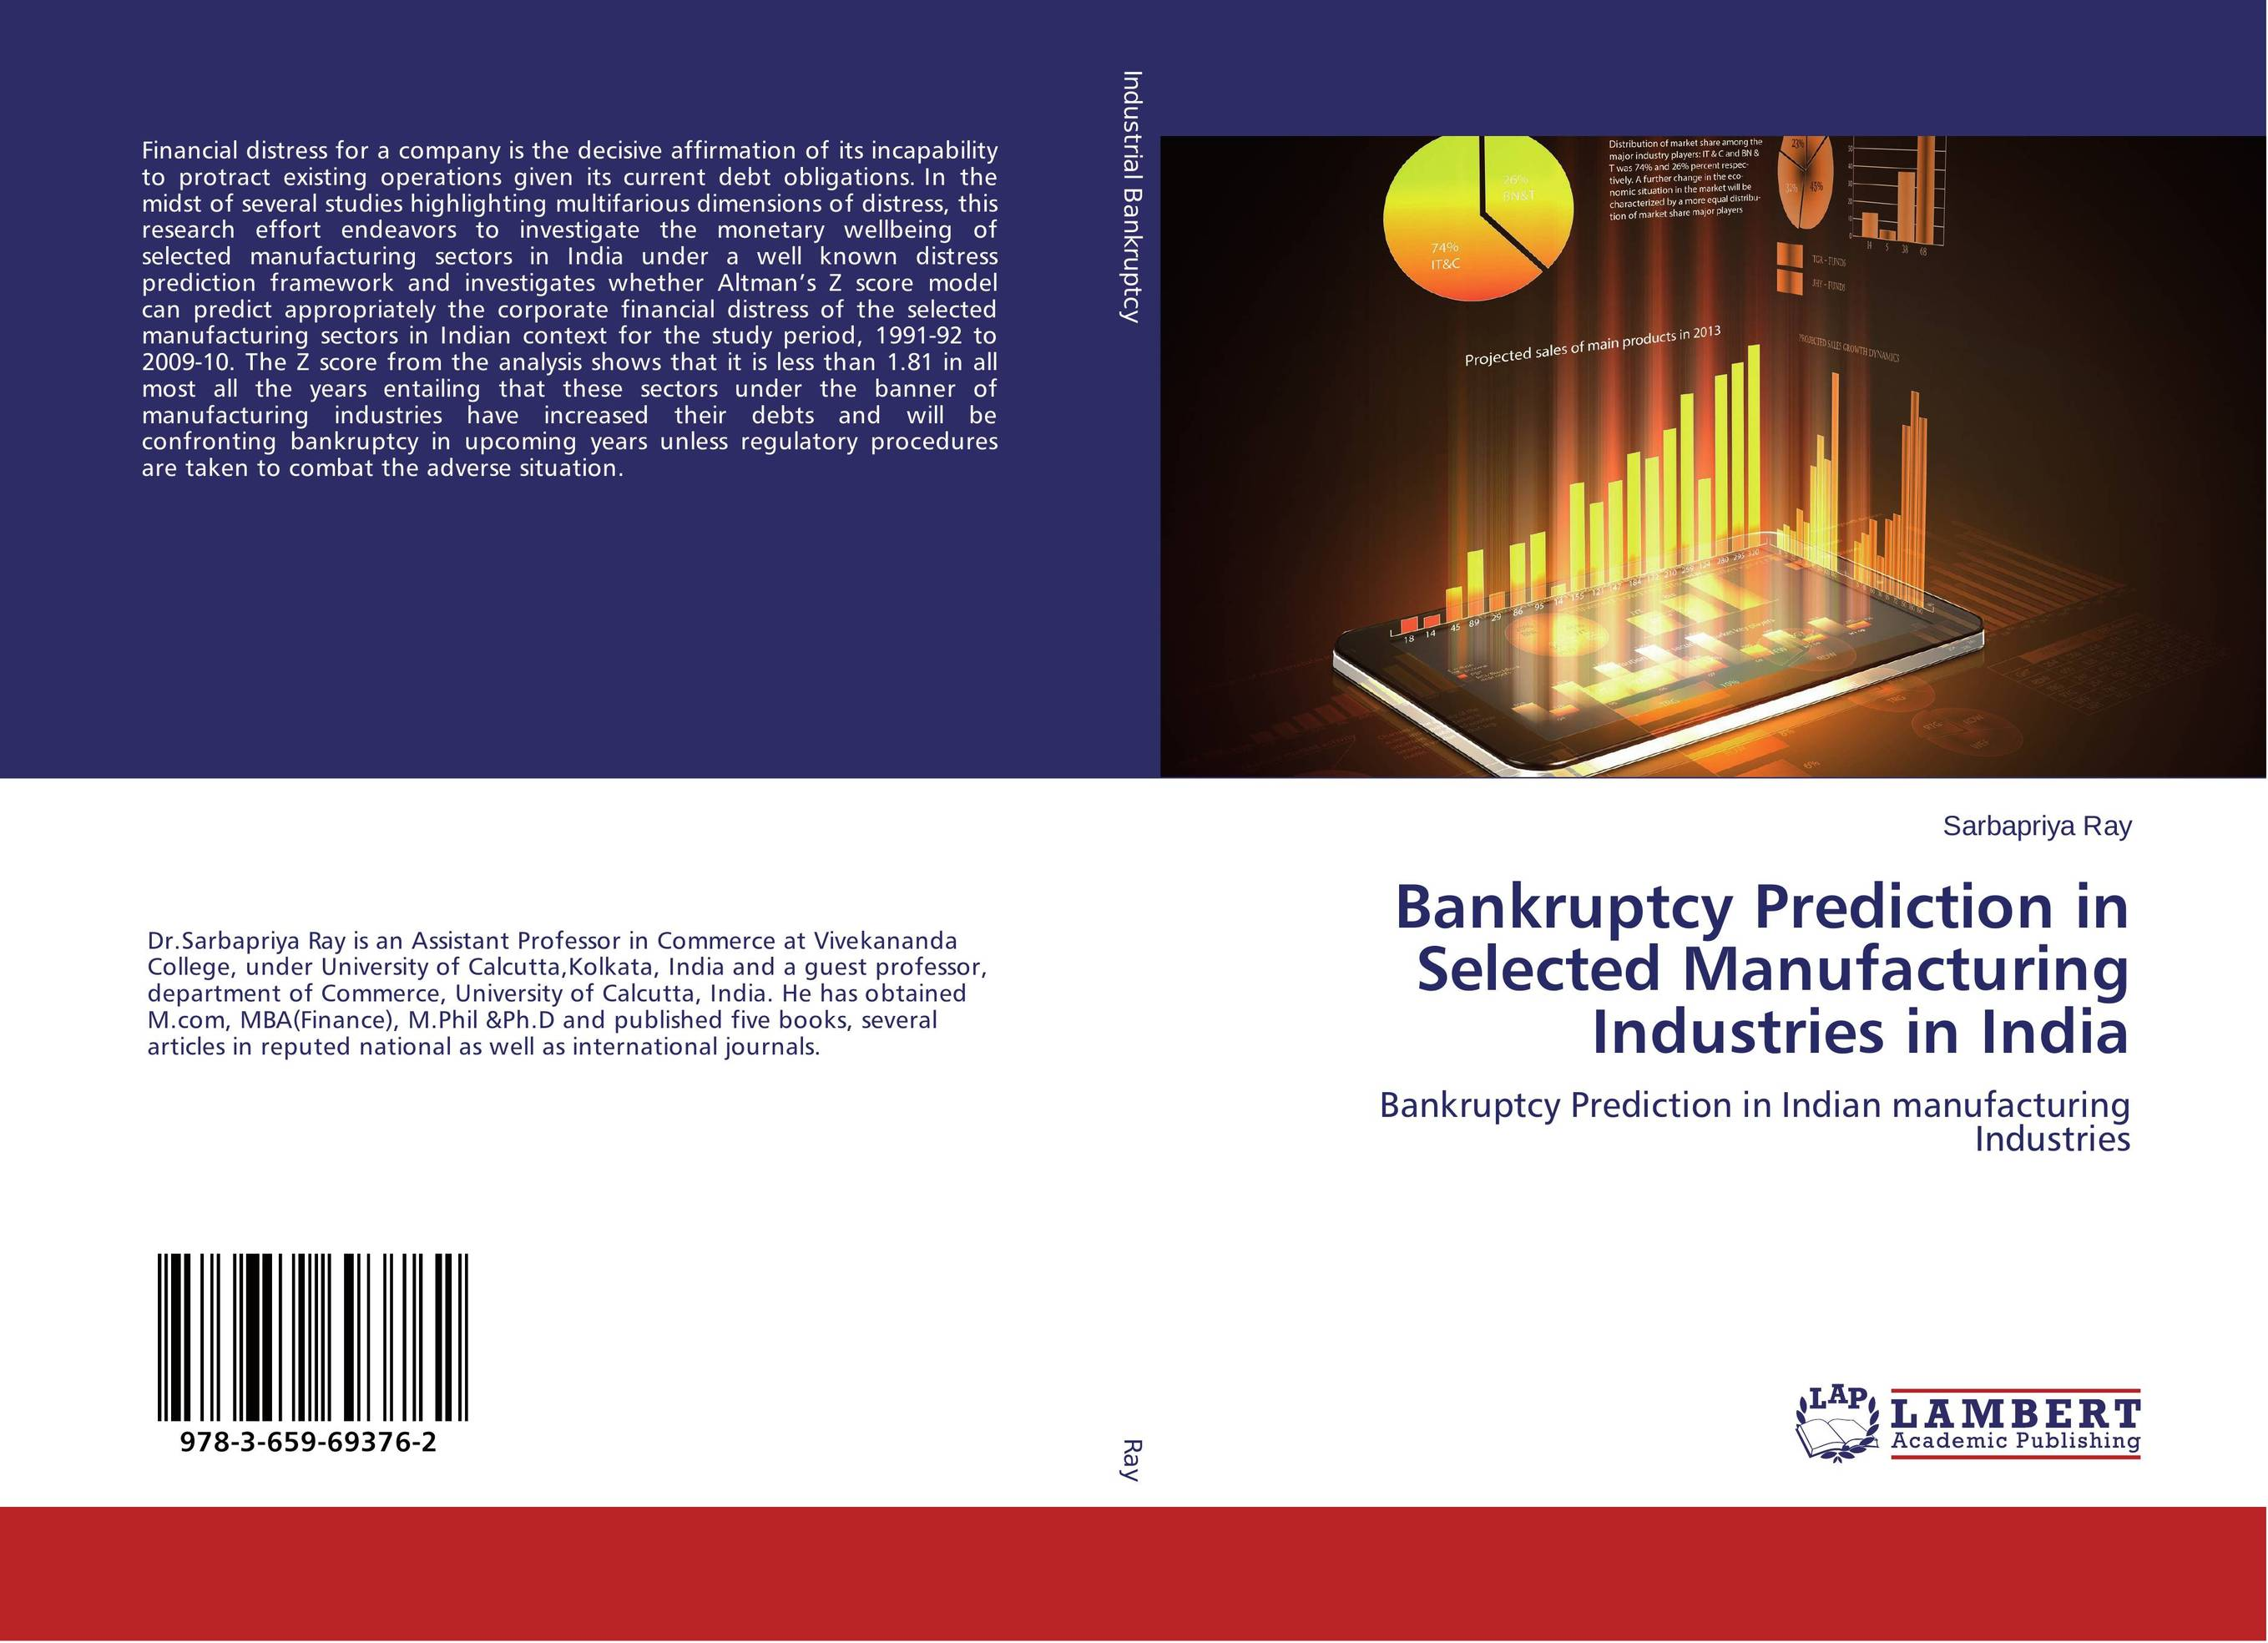 Bankruptcy Prediction in Selected Manufacturing Industries in India edith hotchkiss corporate financial distress and bankruptcy predict and avoid bankruptcy analyze and invest in distressed debt